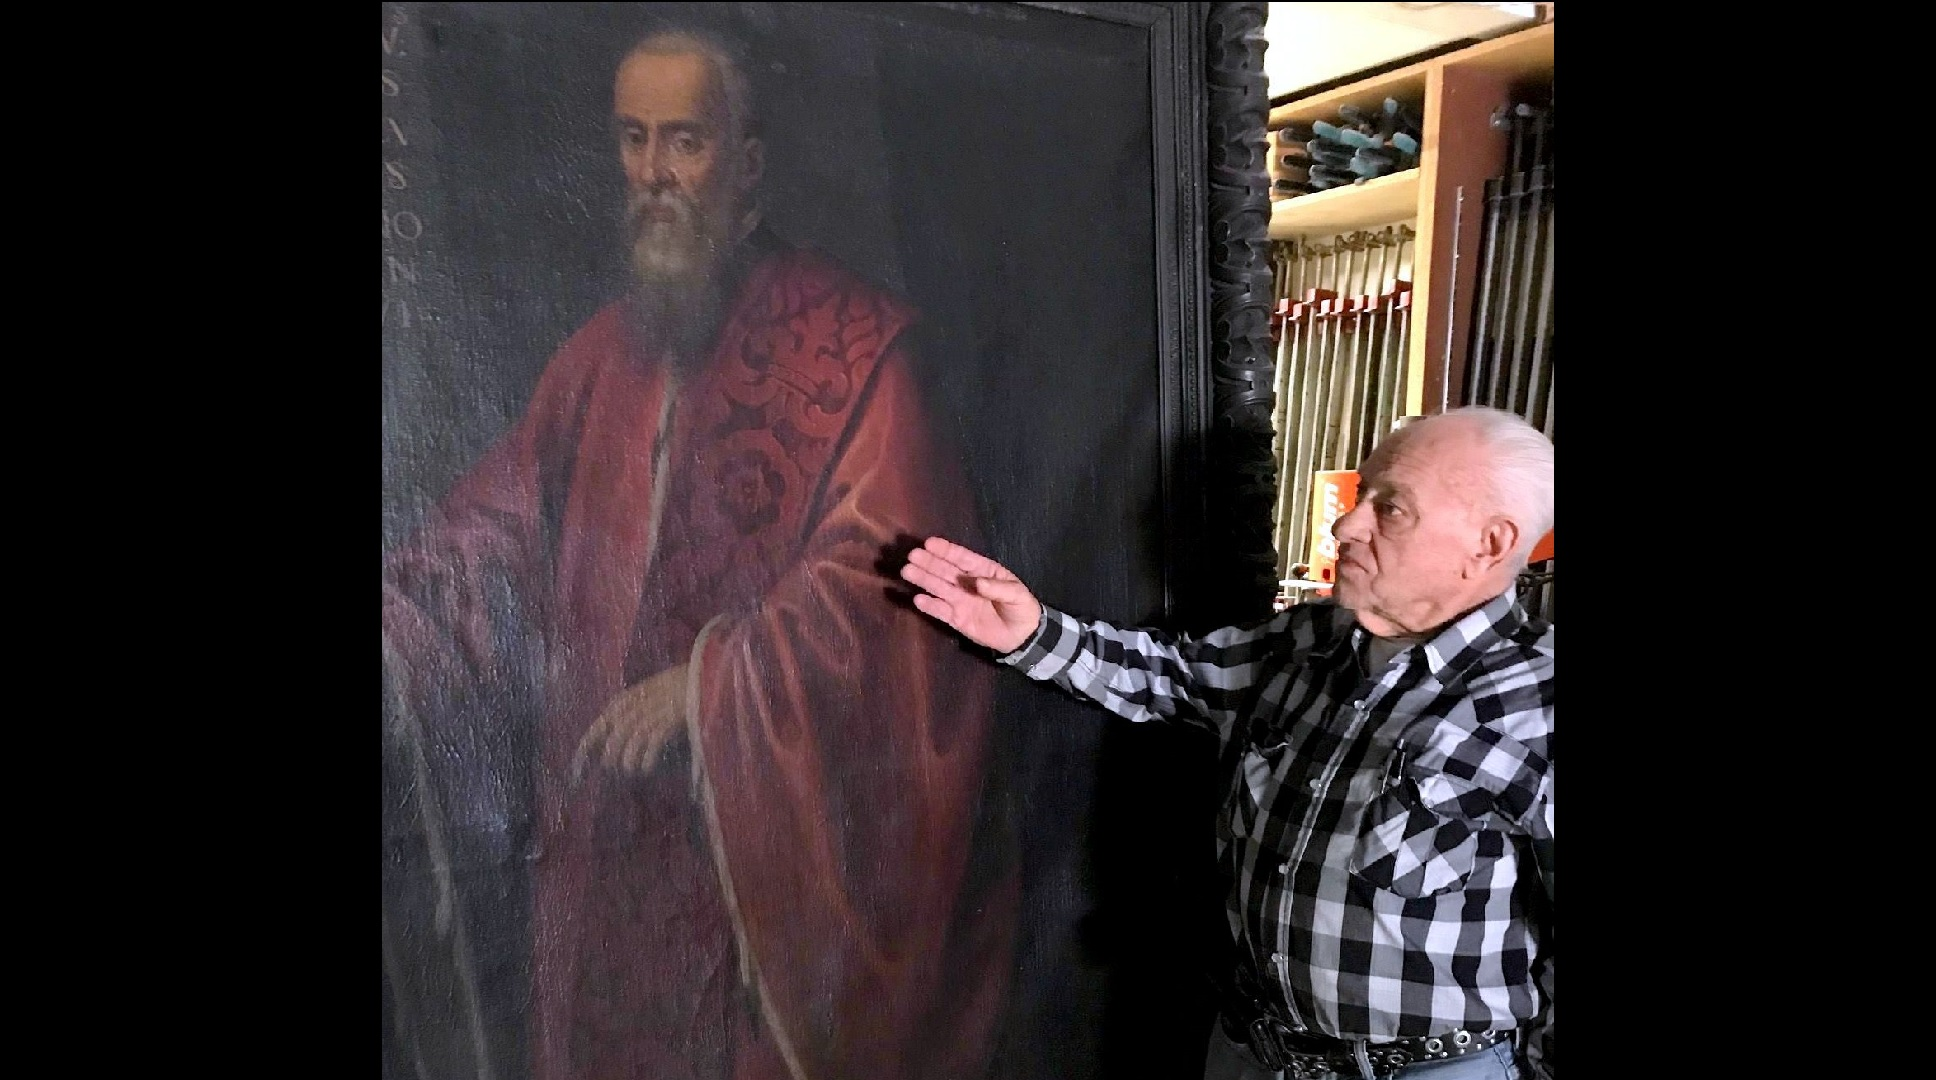 500-Year-Old Painting Bequeathed by Dying Friend May Be a Da Vinci, Toronto Man Says